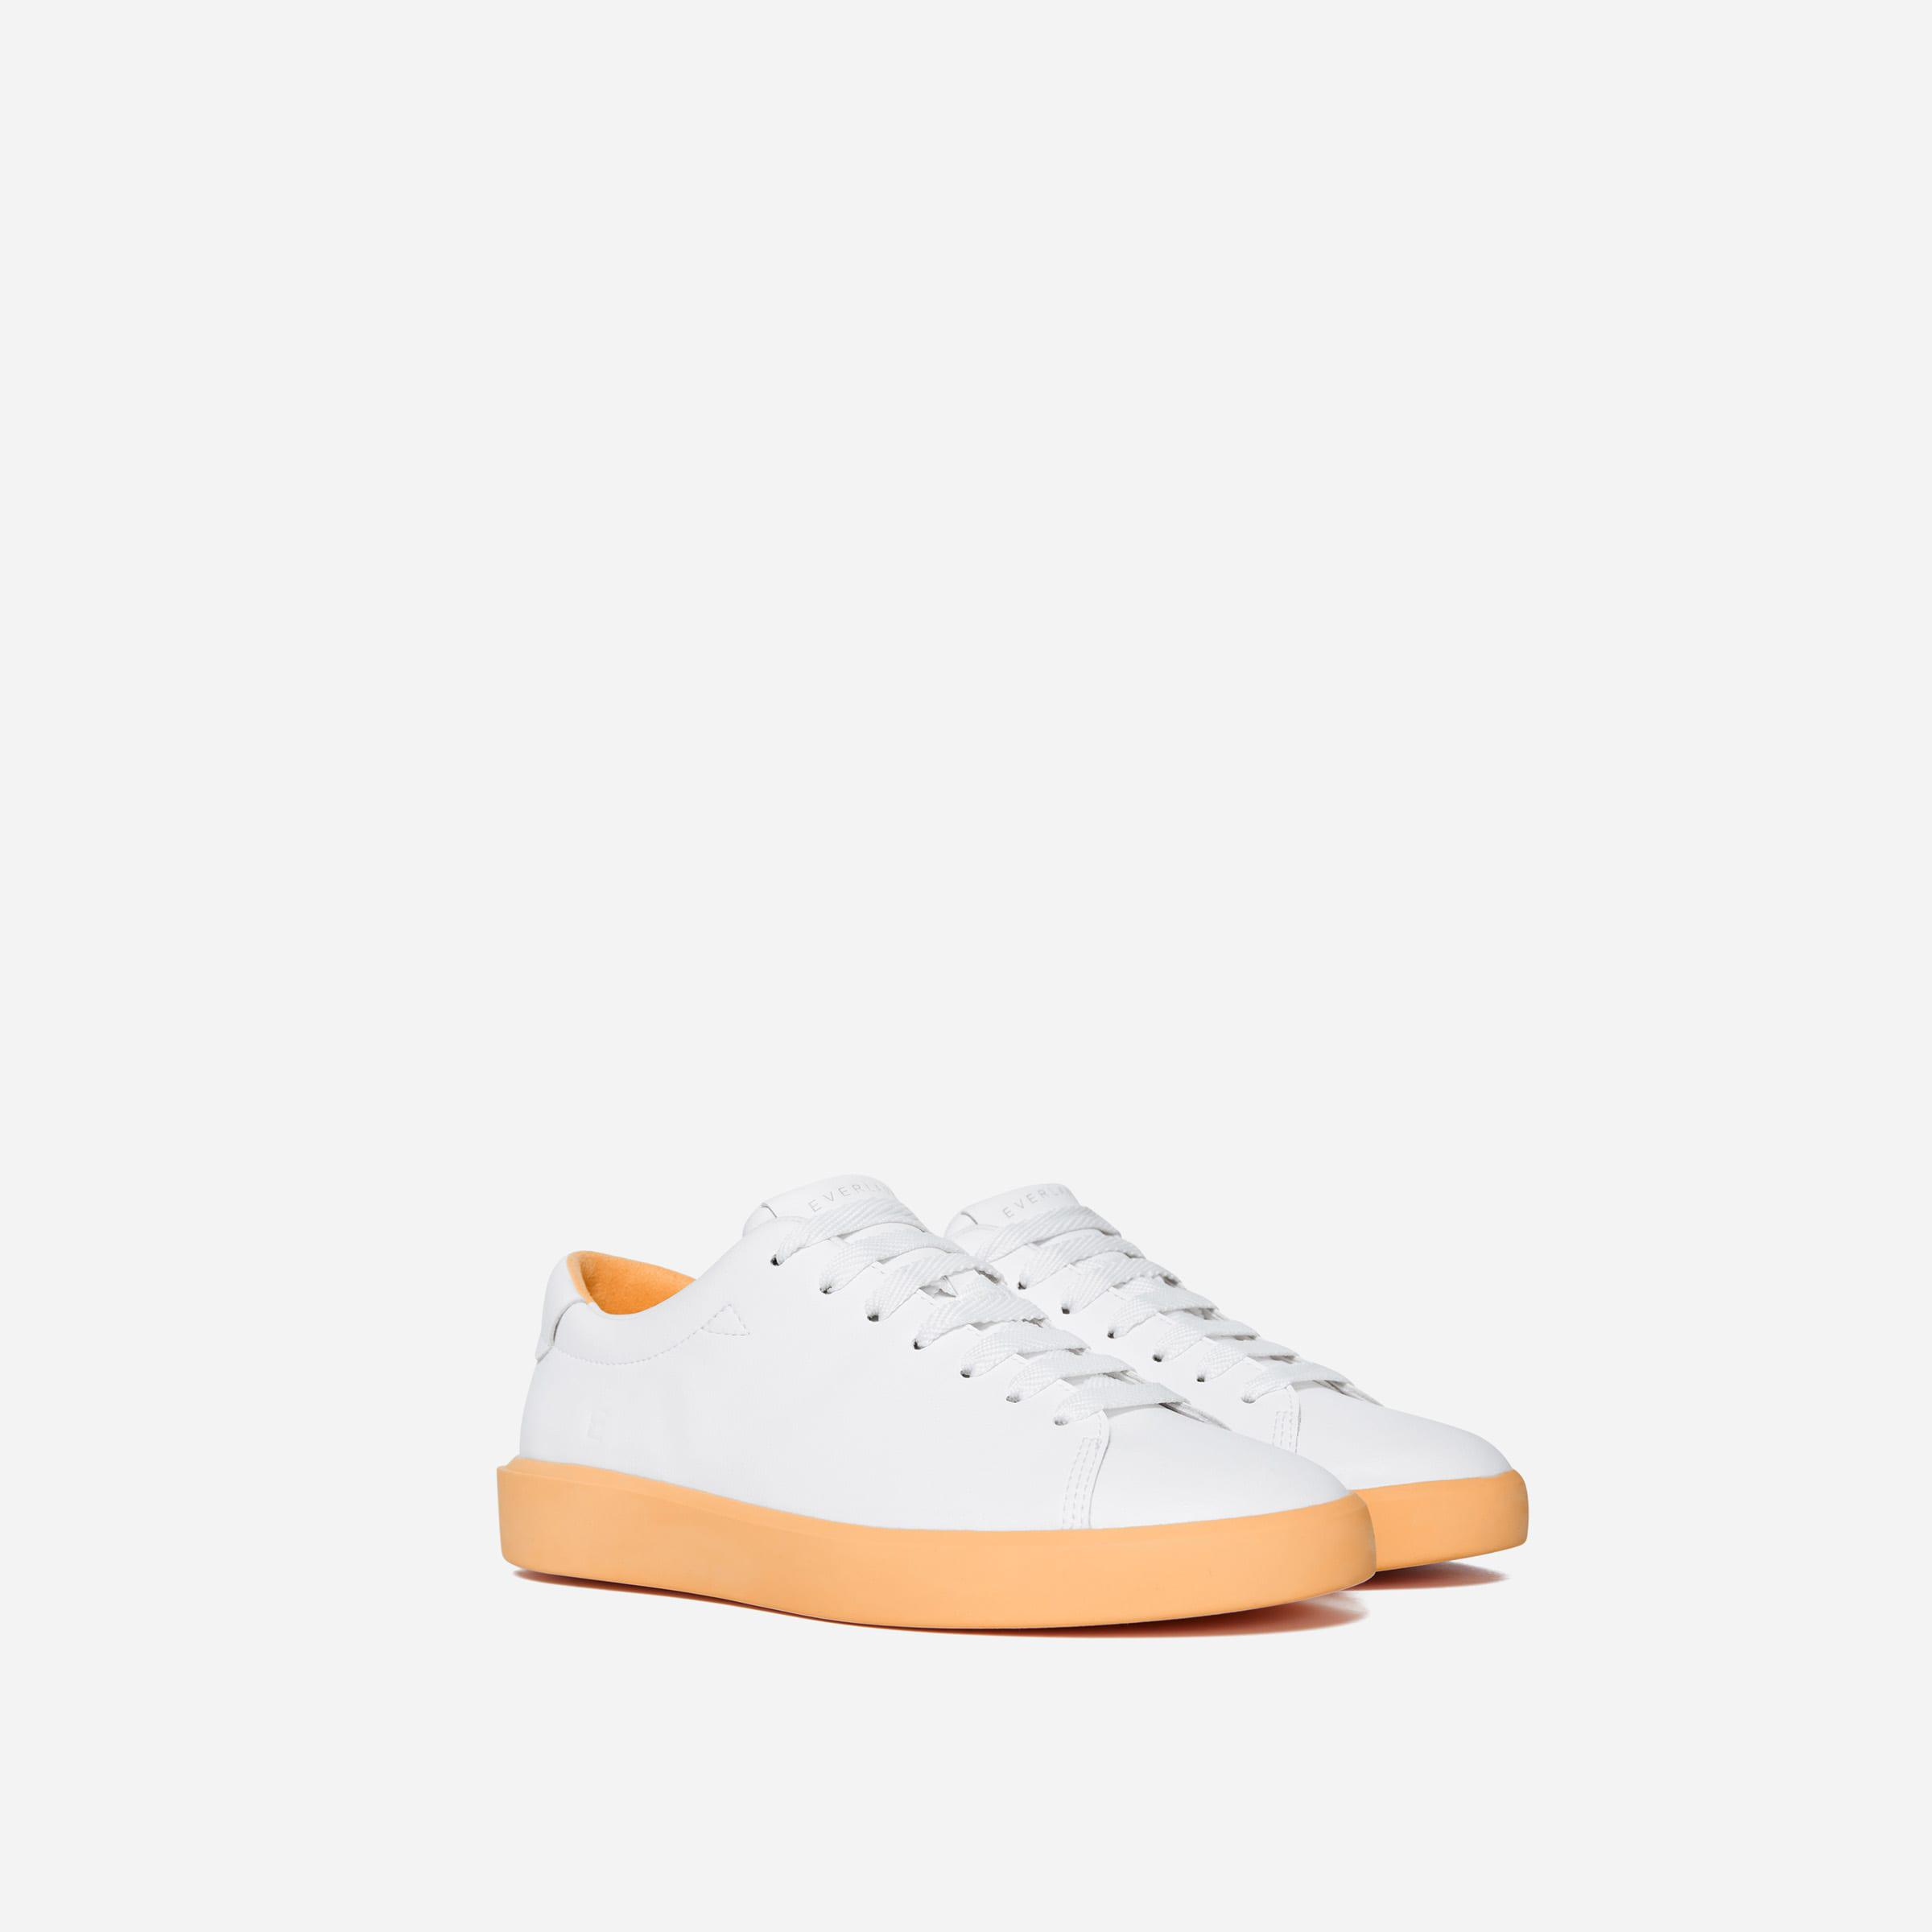 The ReLeather Tennis Shoe